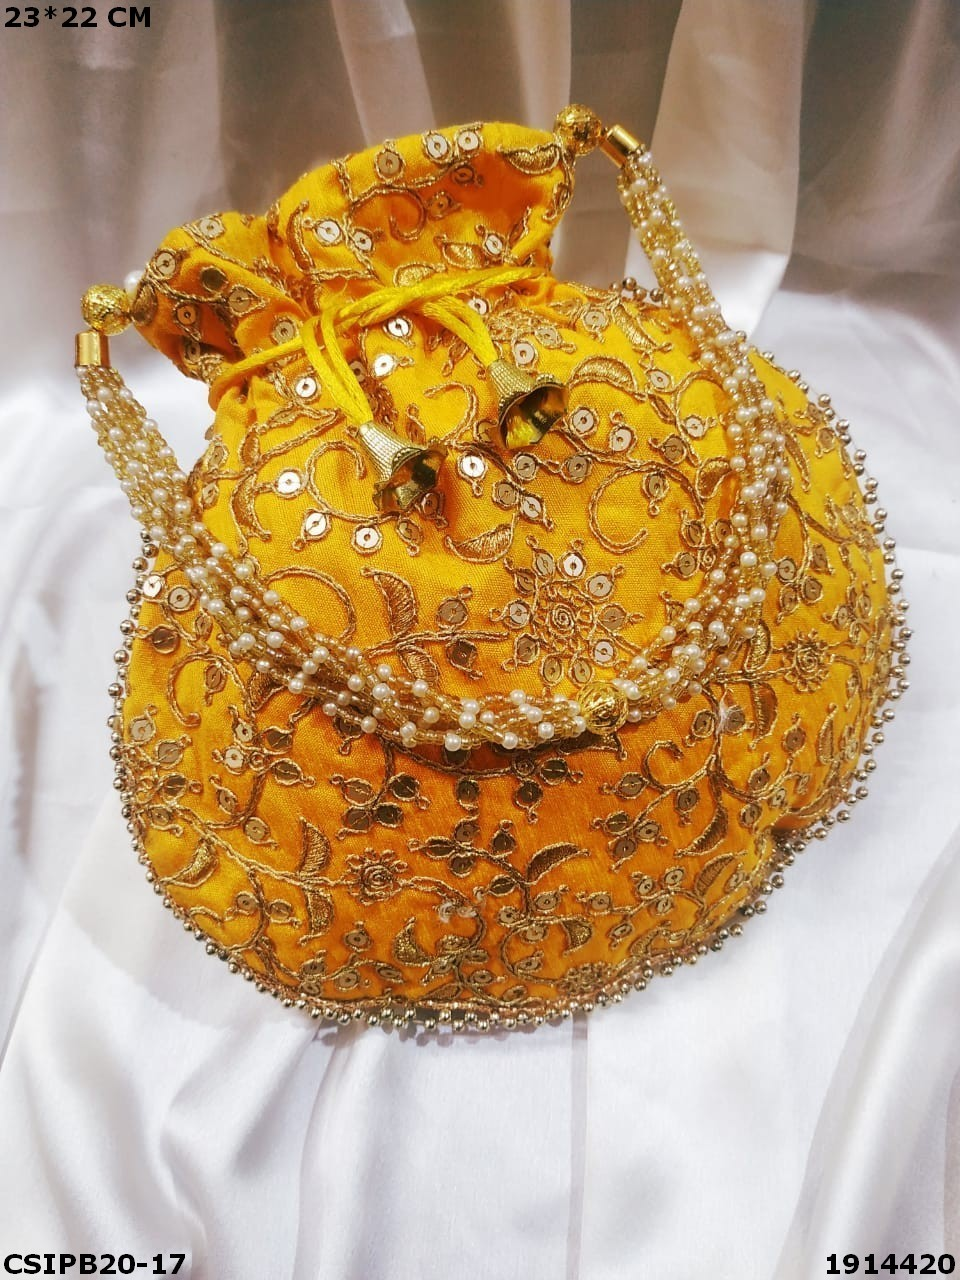 Handcrafted Ethnic Embroidered Potli Bag